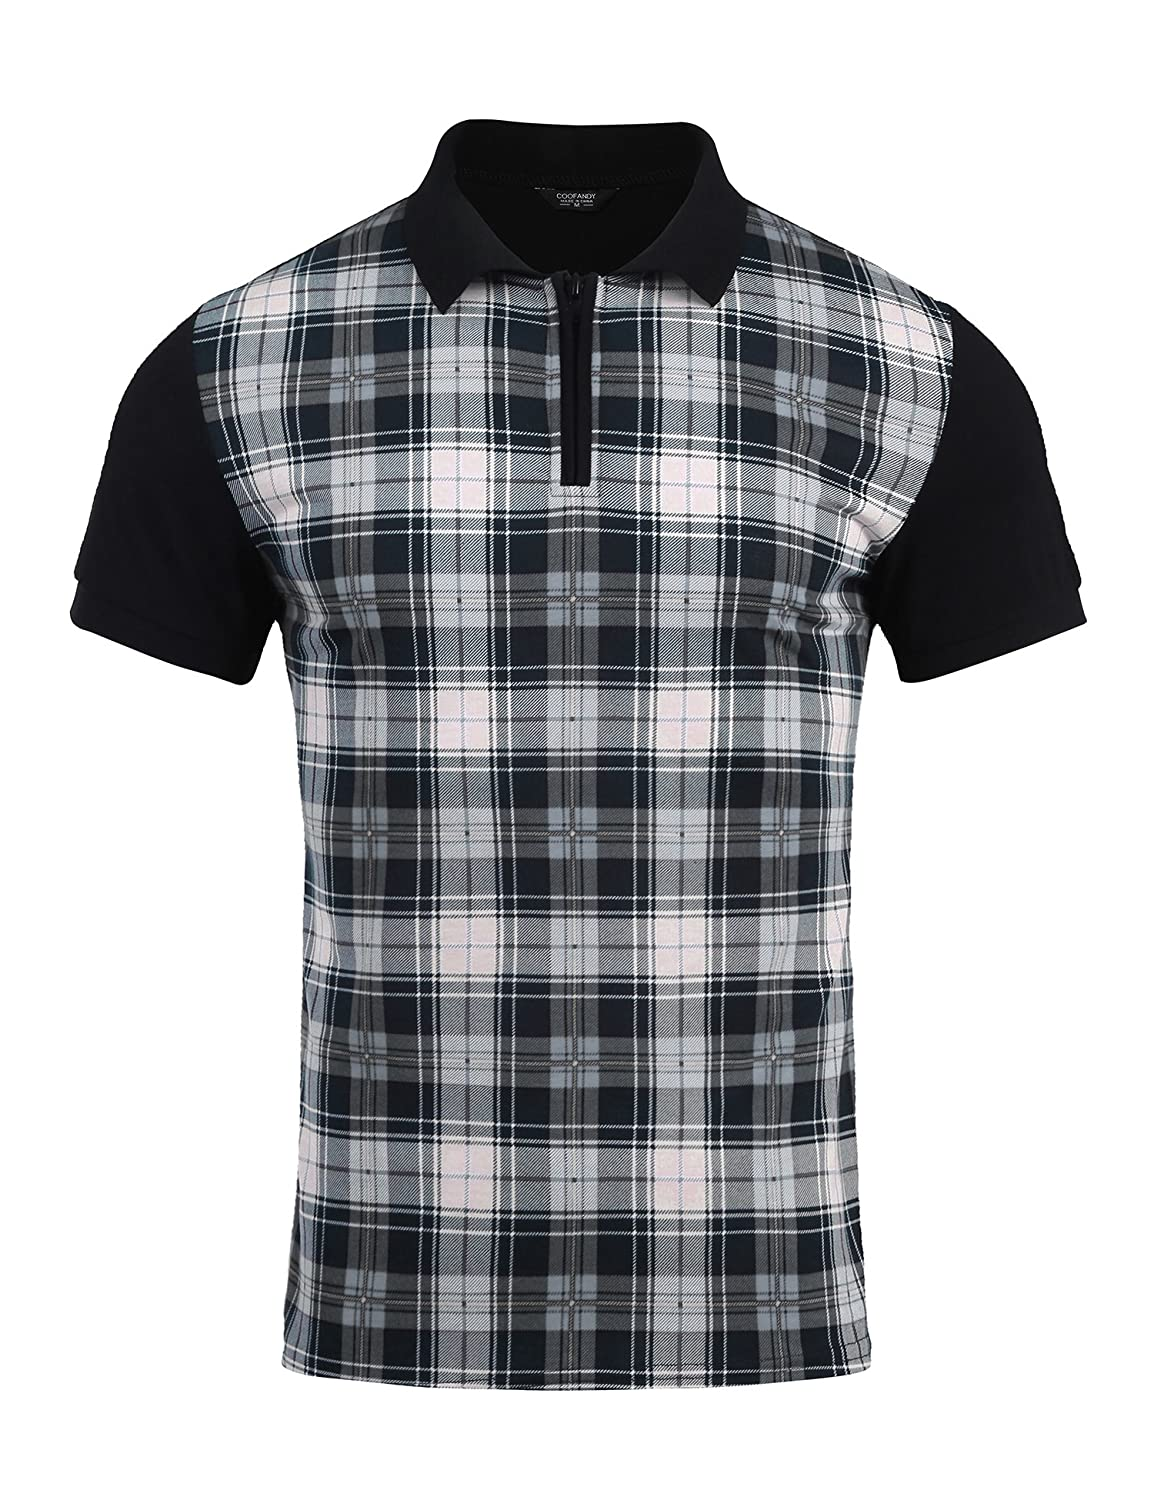 Vintage Shirts – Mens – Retro Shirts COOFANDY Mens Short Sleeve Plaid Zipper Shirts Collar Jersey Polo Shirt $19.99 AT vintagedancer.com